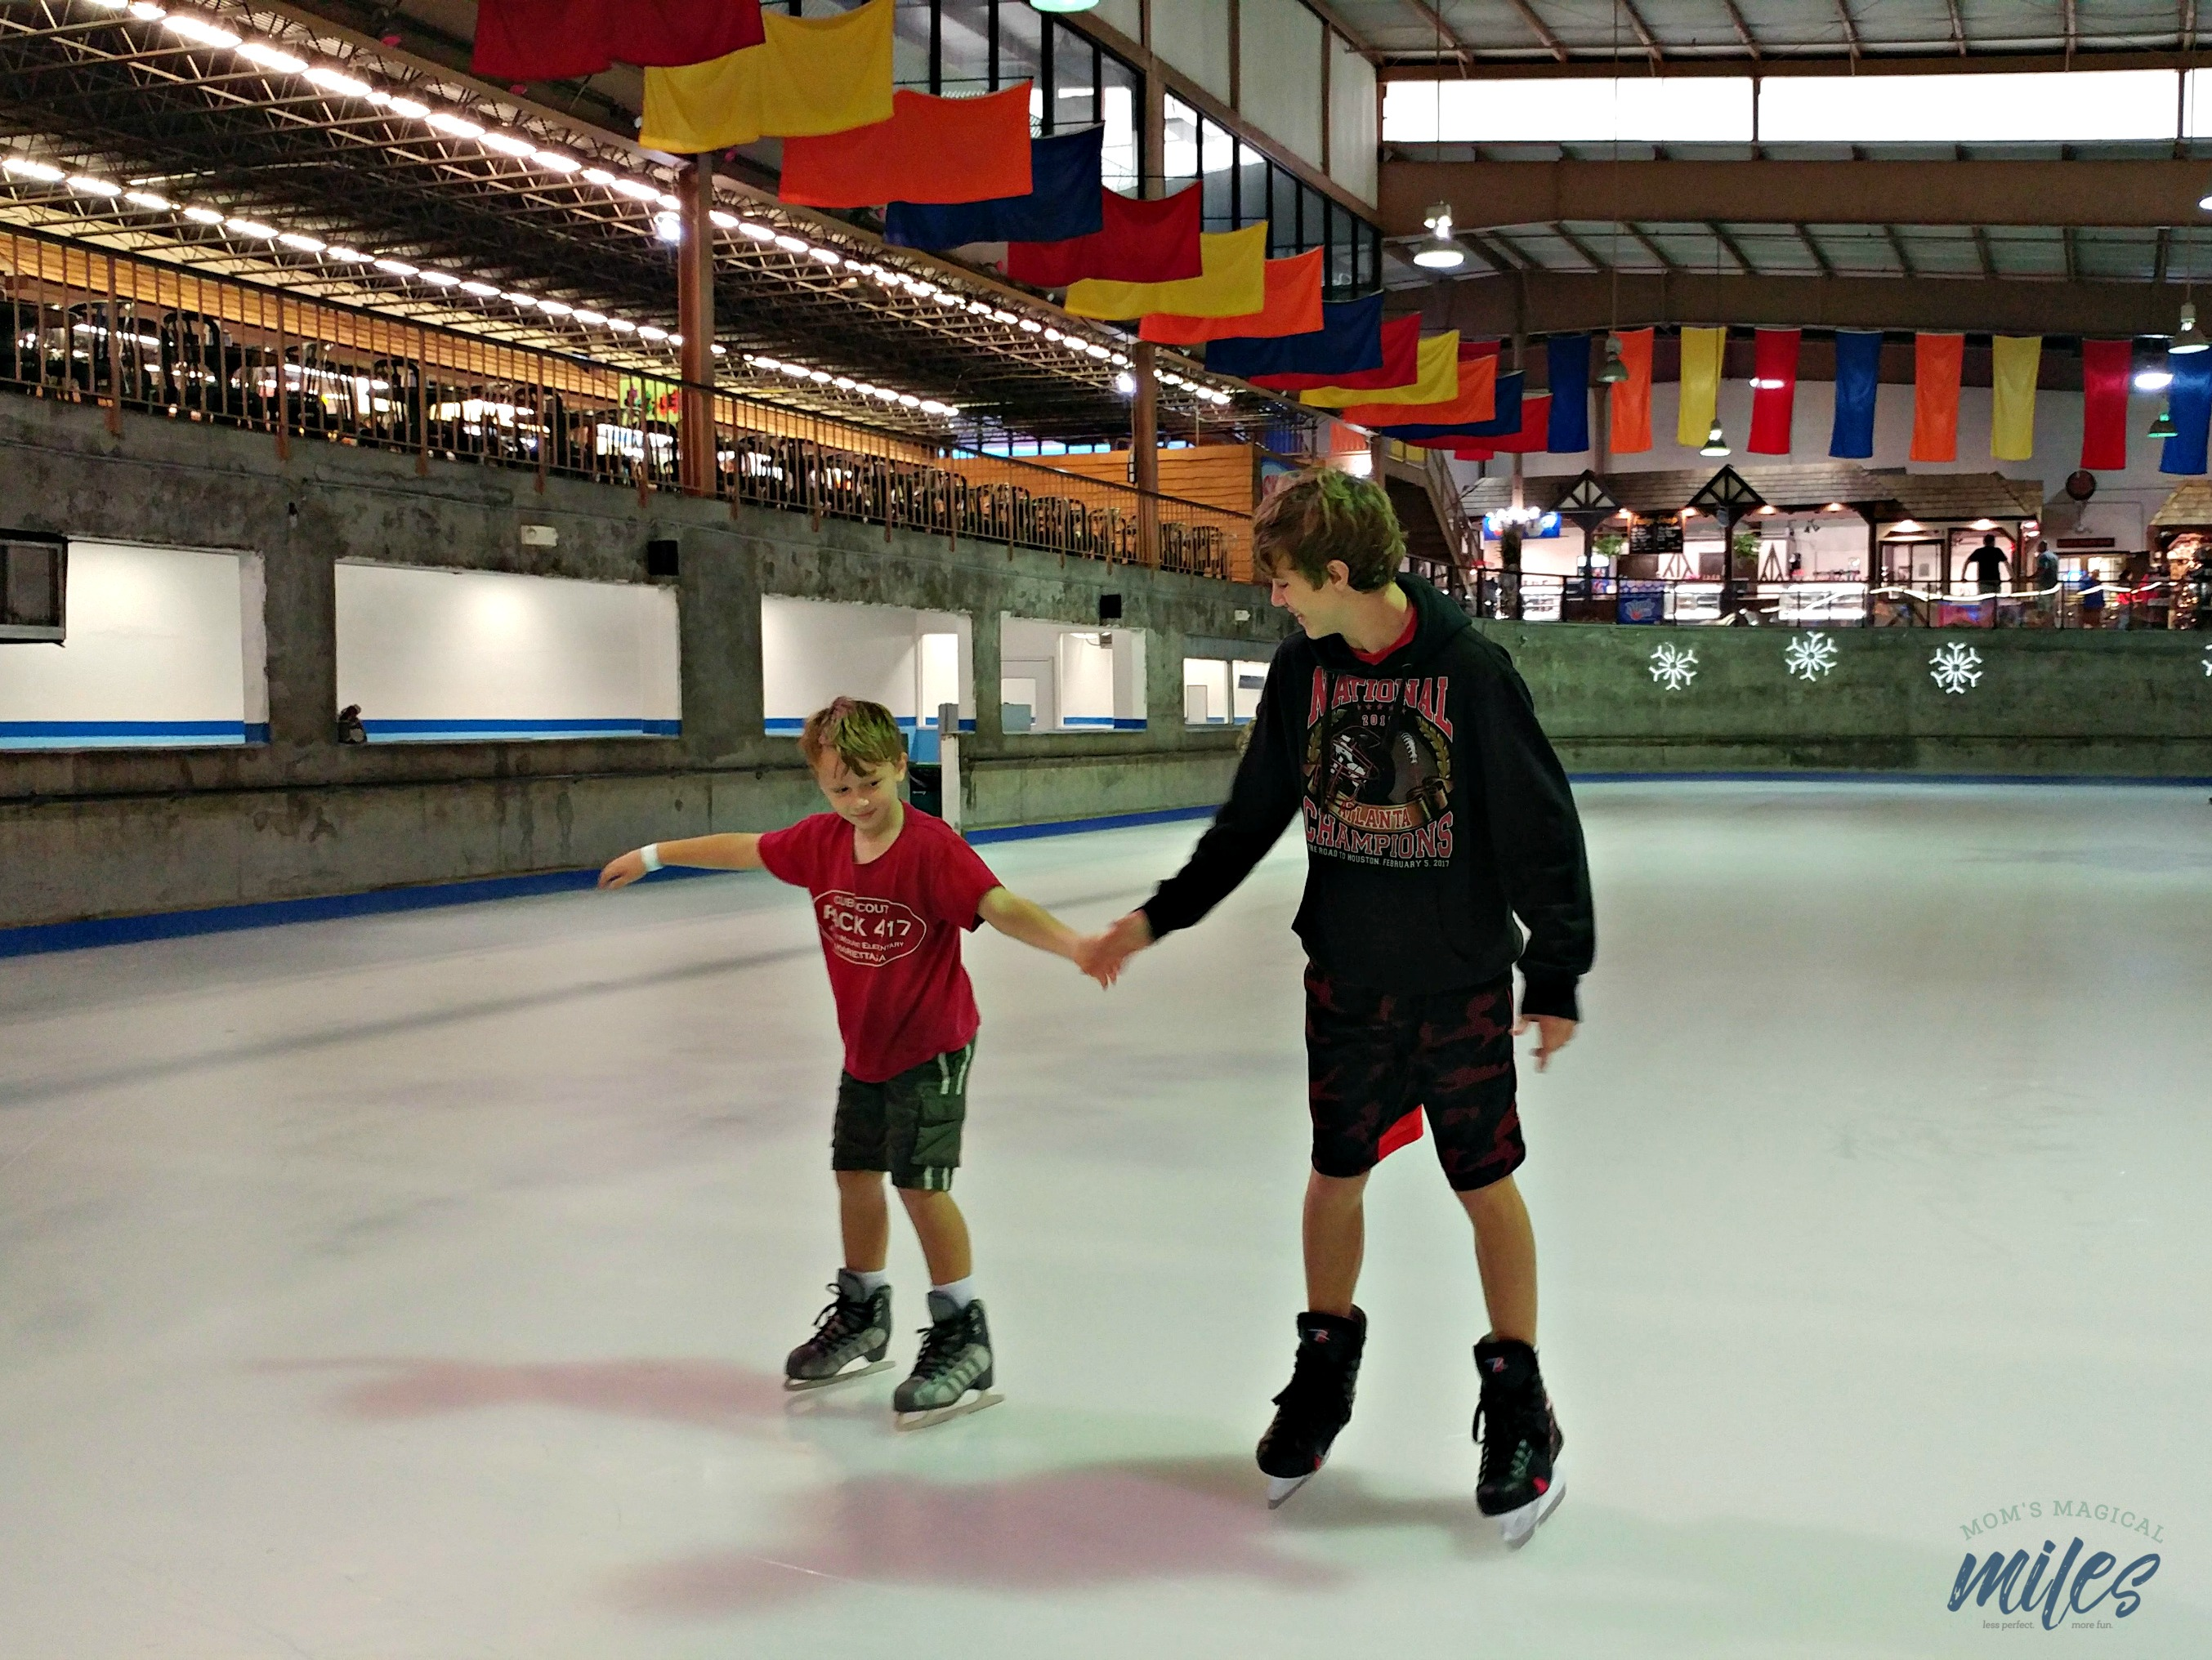 Rainy day in Gatlinburg, TN? Head up to Ober Gatlinburg and do a little indoor ice skating!